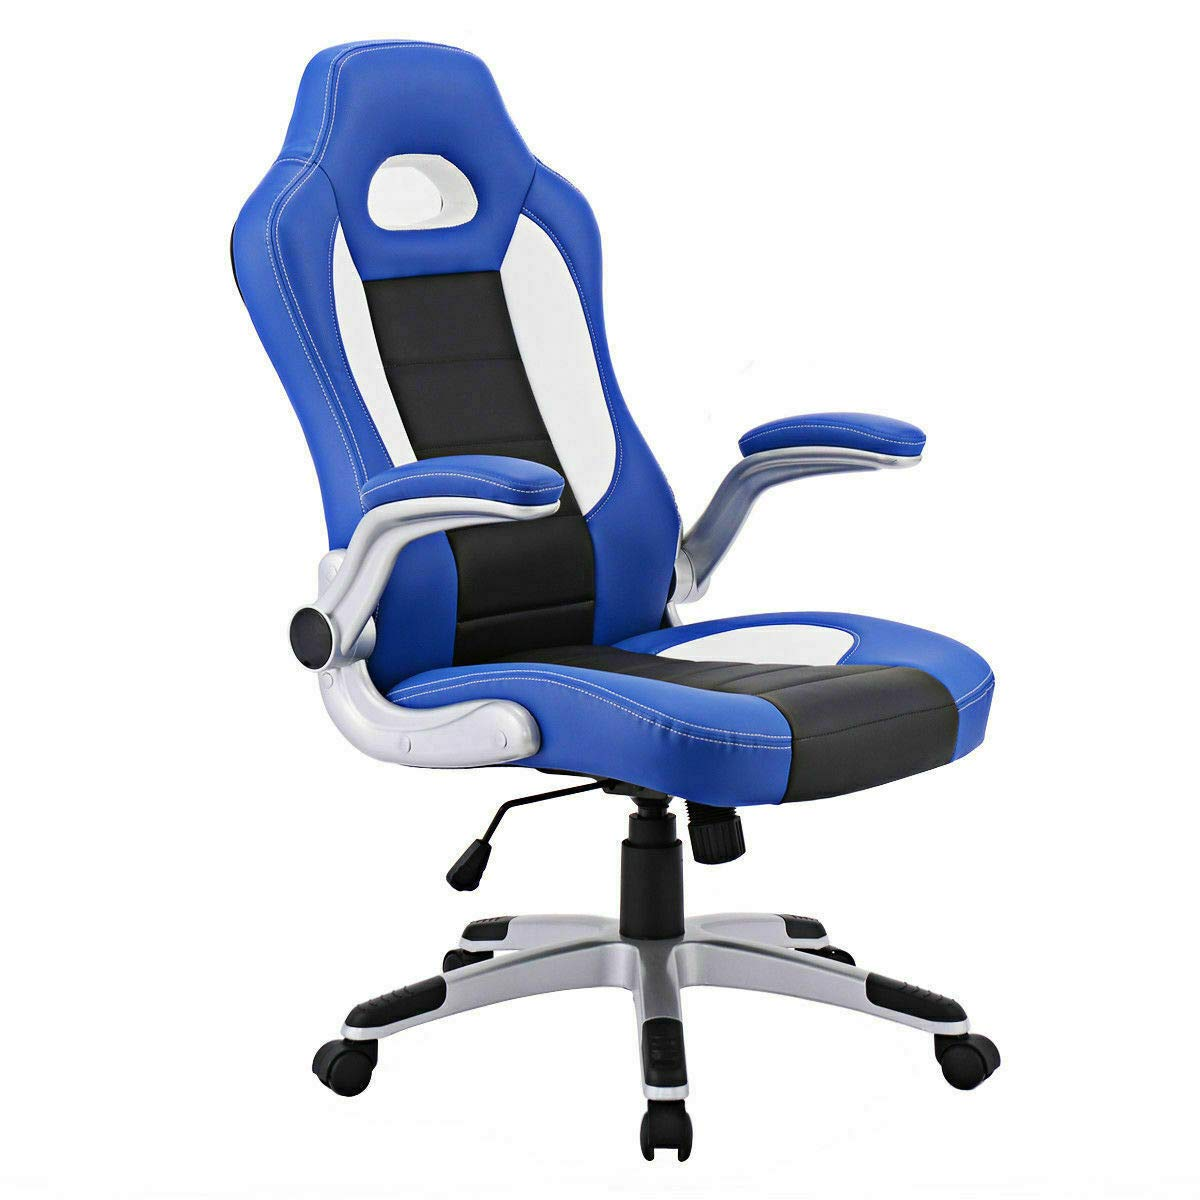 Seleq Blue PU Leather High Back Desk Chair Racing Style with Lifting Armrests for Office